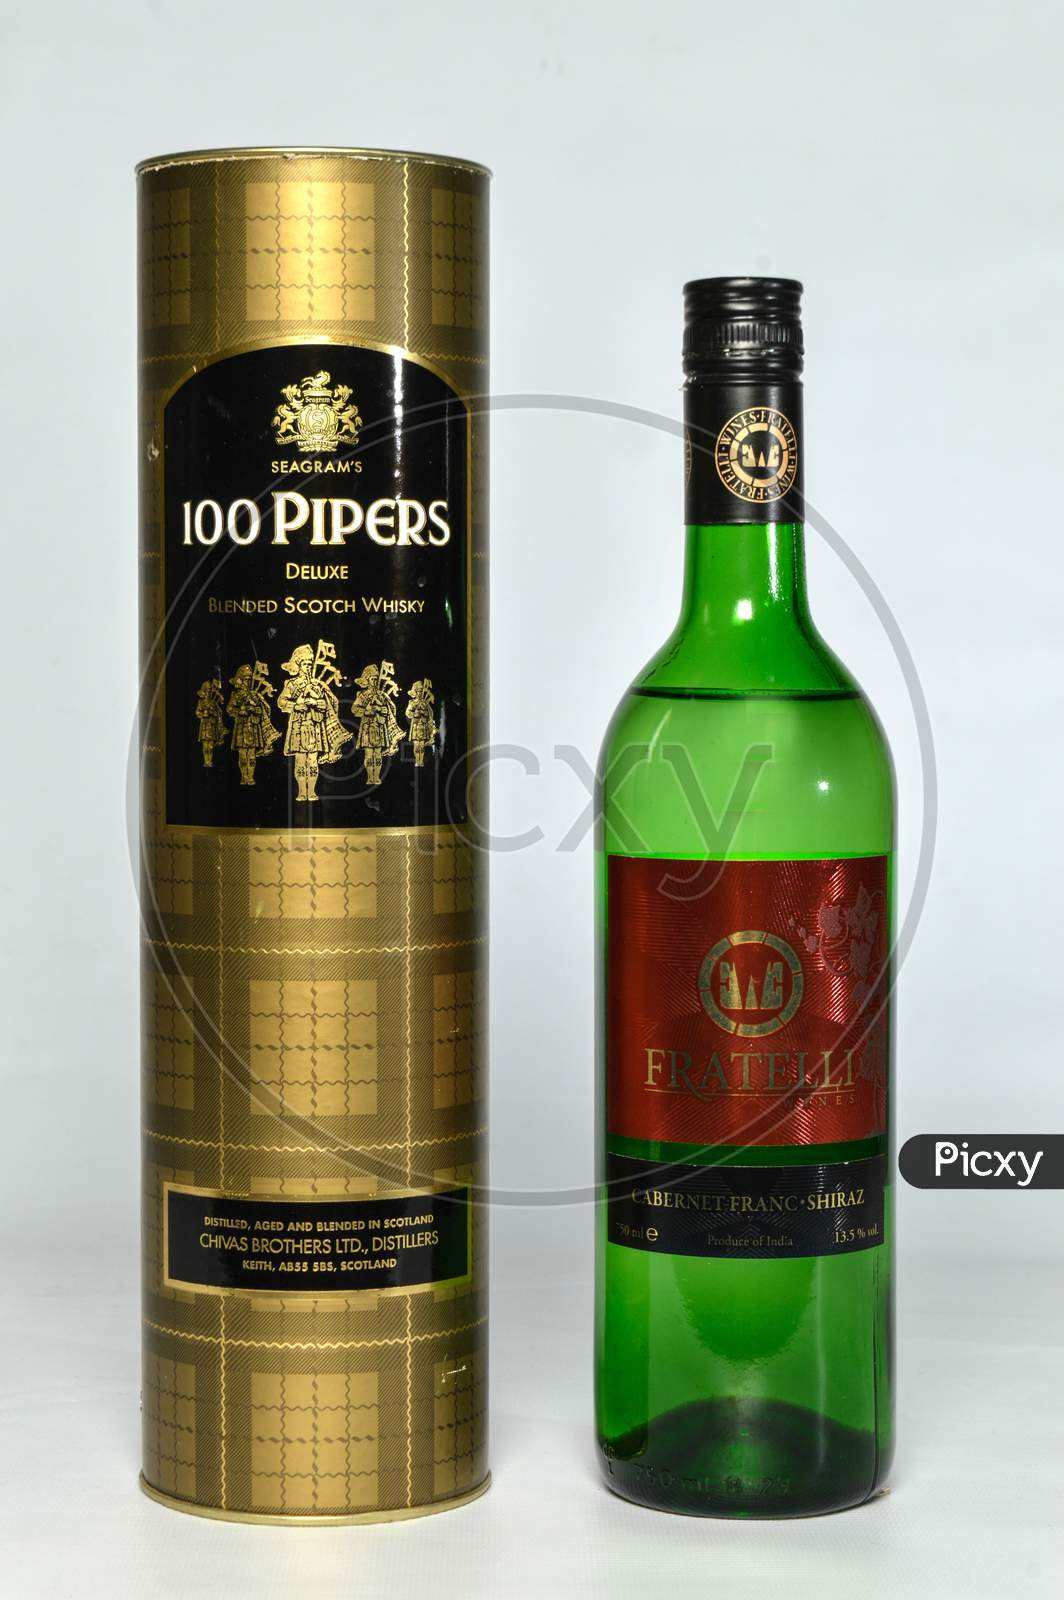 Seagram'S 100 Pipers Deluxe Blended Scotch Whiskey And Fratelli Wines Isolated On White Background 750 M.L.